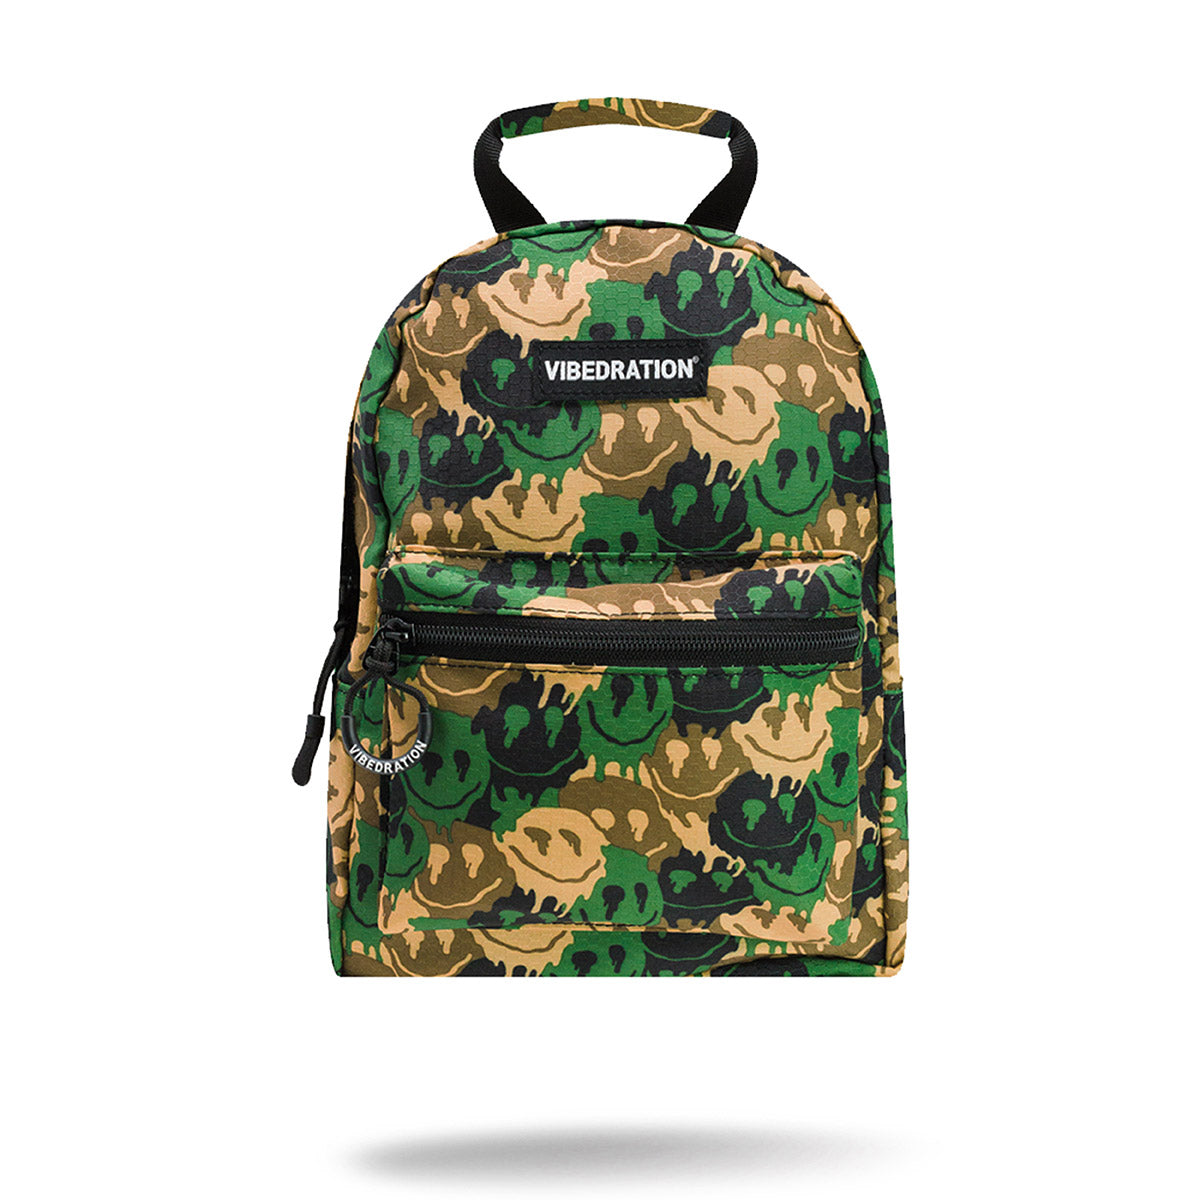 Camo Smileys Mini Backpack for Music Festivals